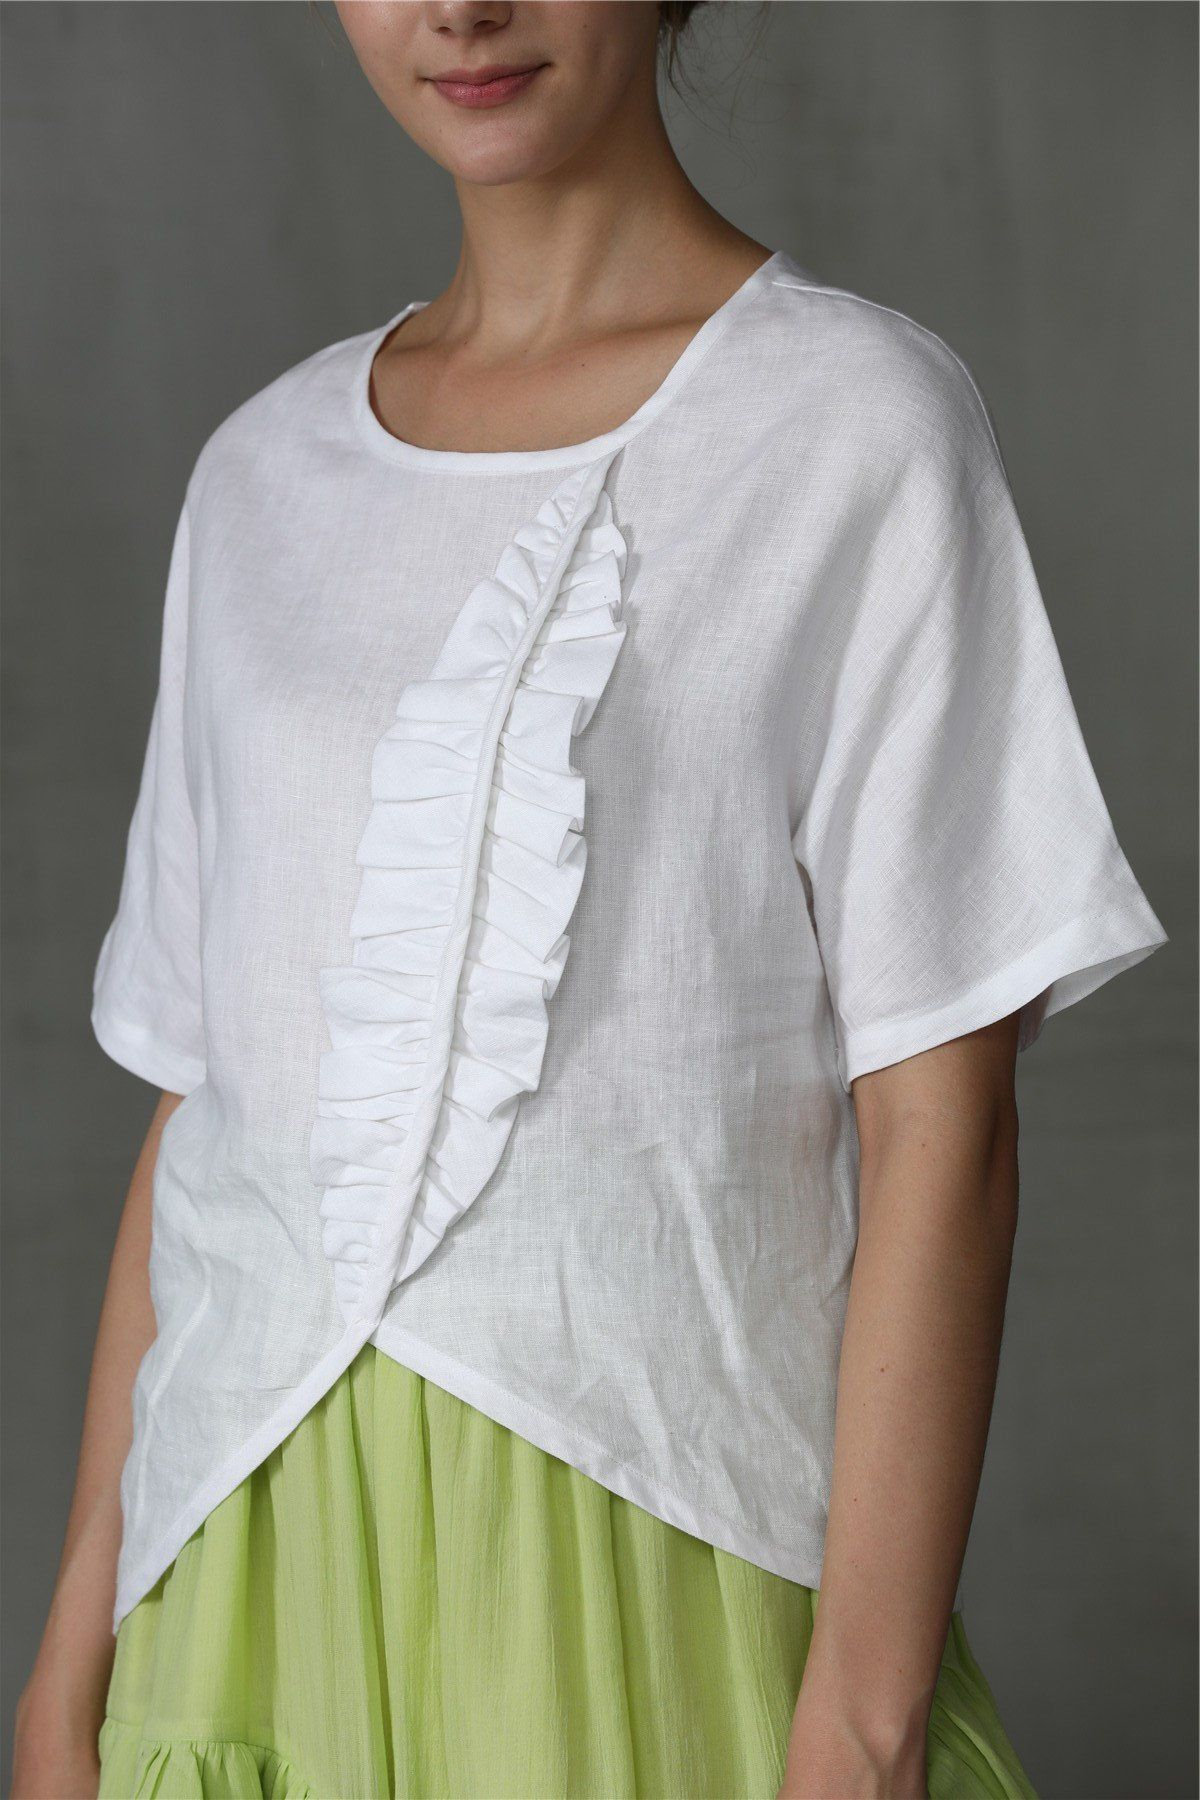 French Linen Top Blouse in GrayWhite Earth Day Top Linen